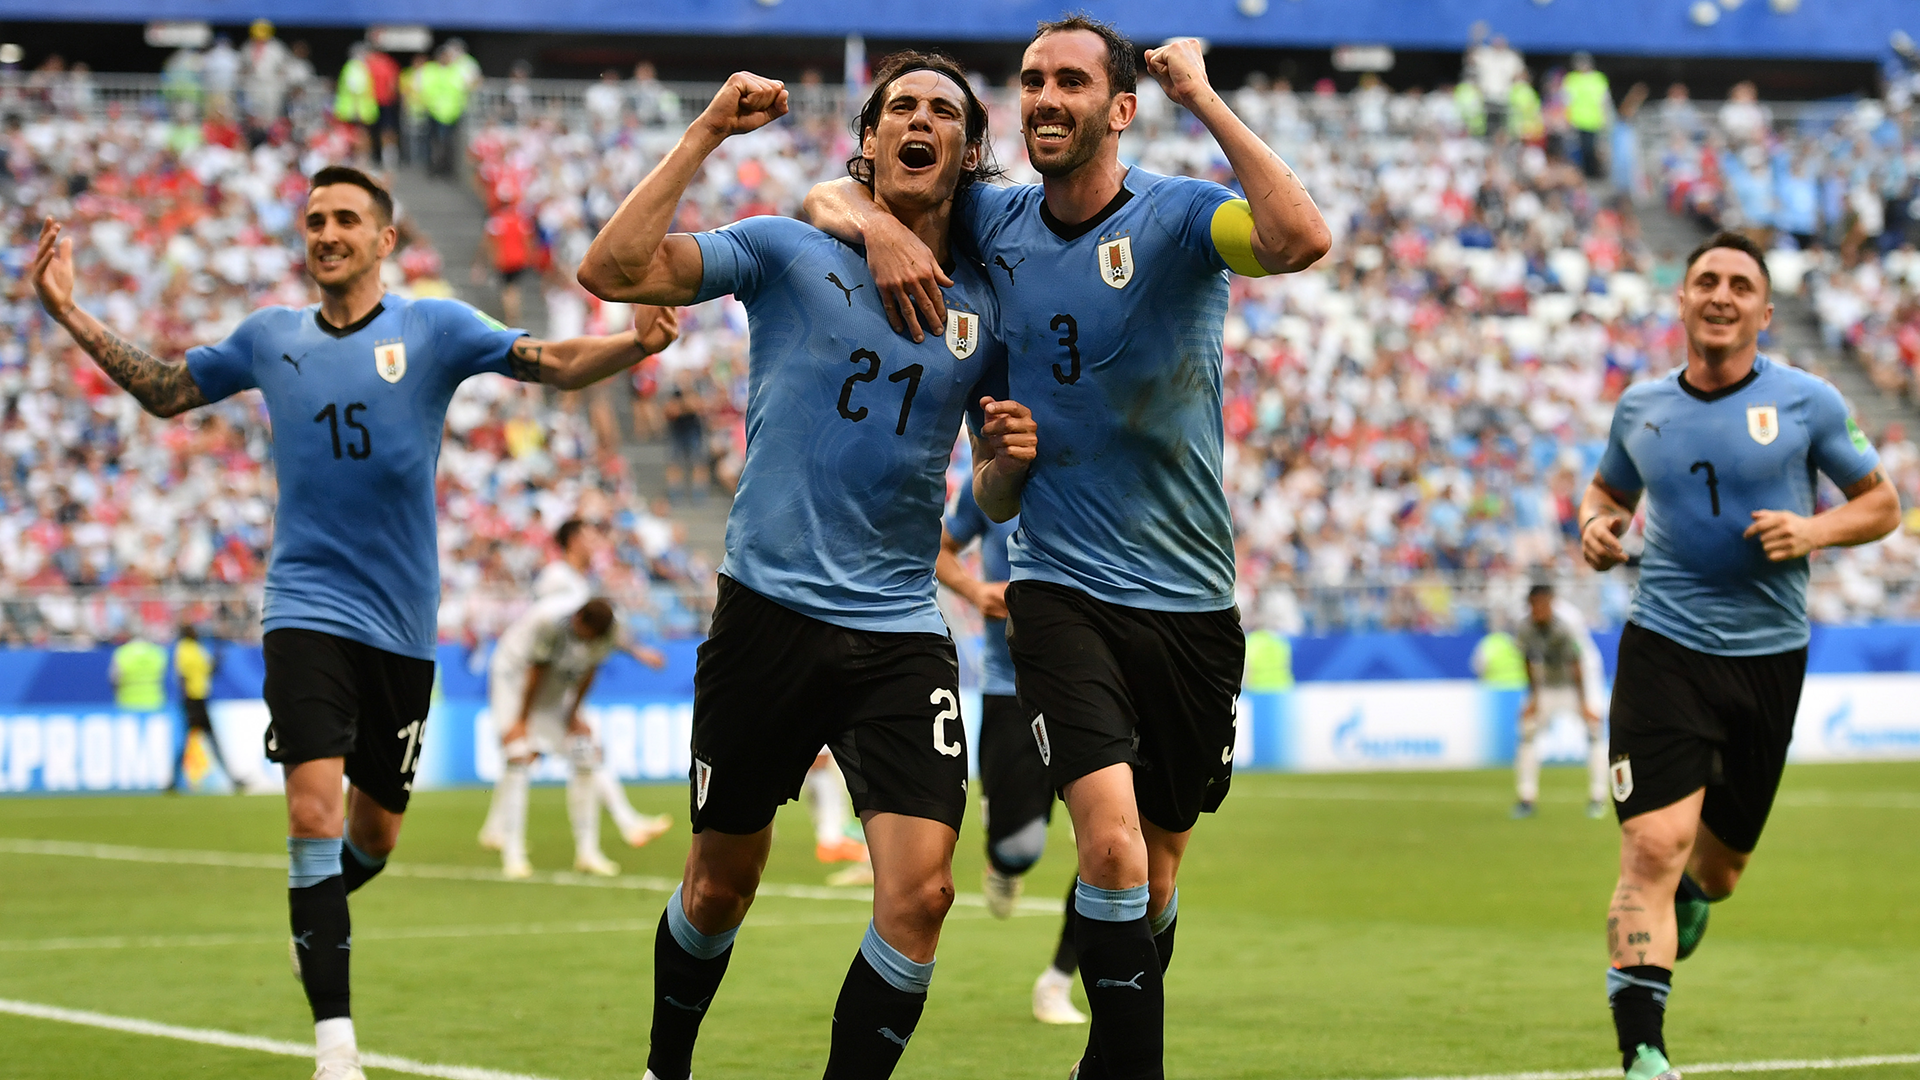 Edinson Cavani fires Uruguay into World Cup's last eight after beating Portugal